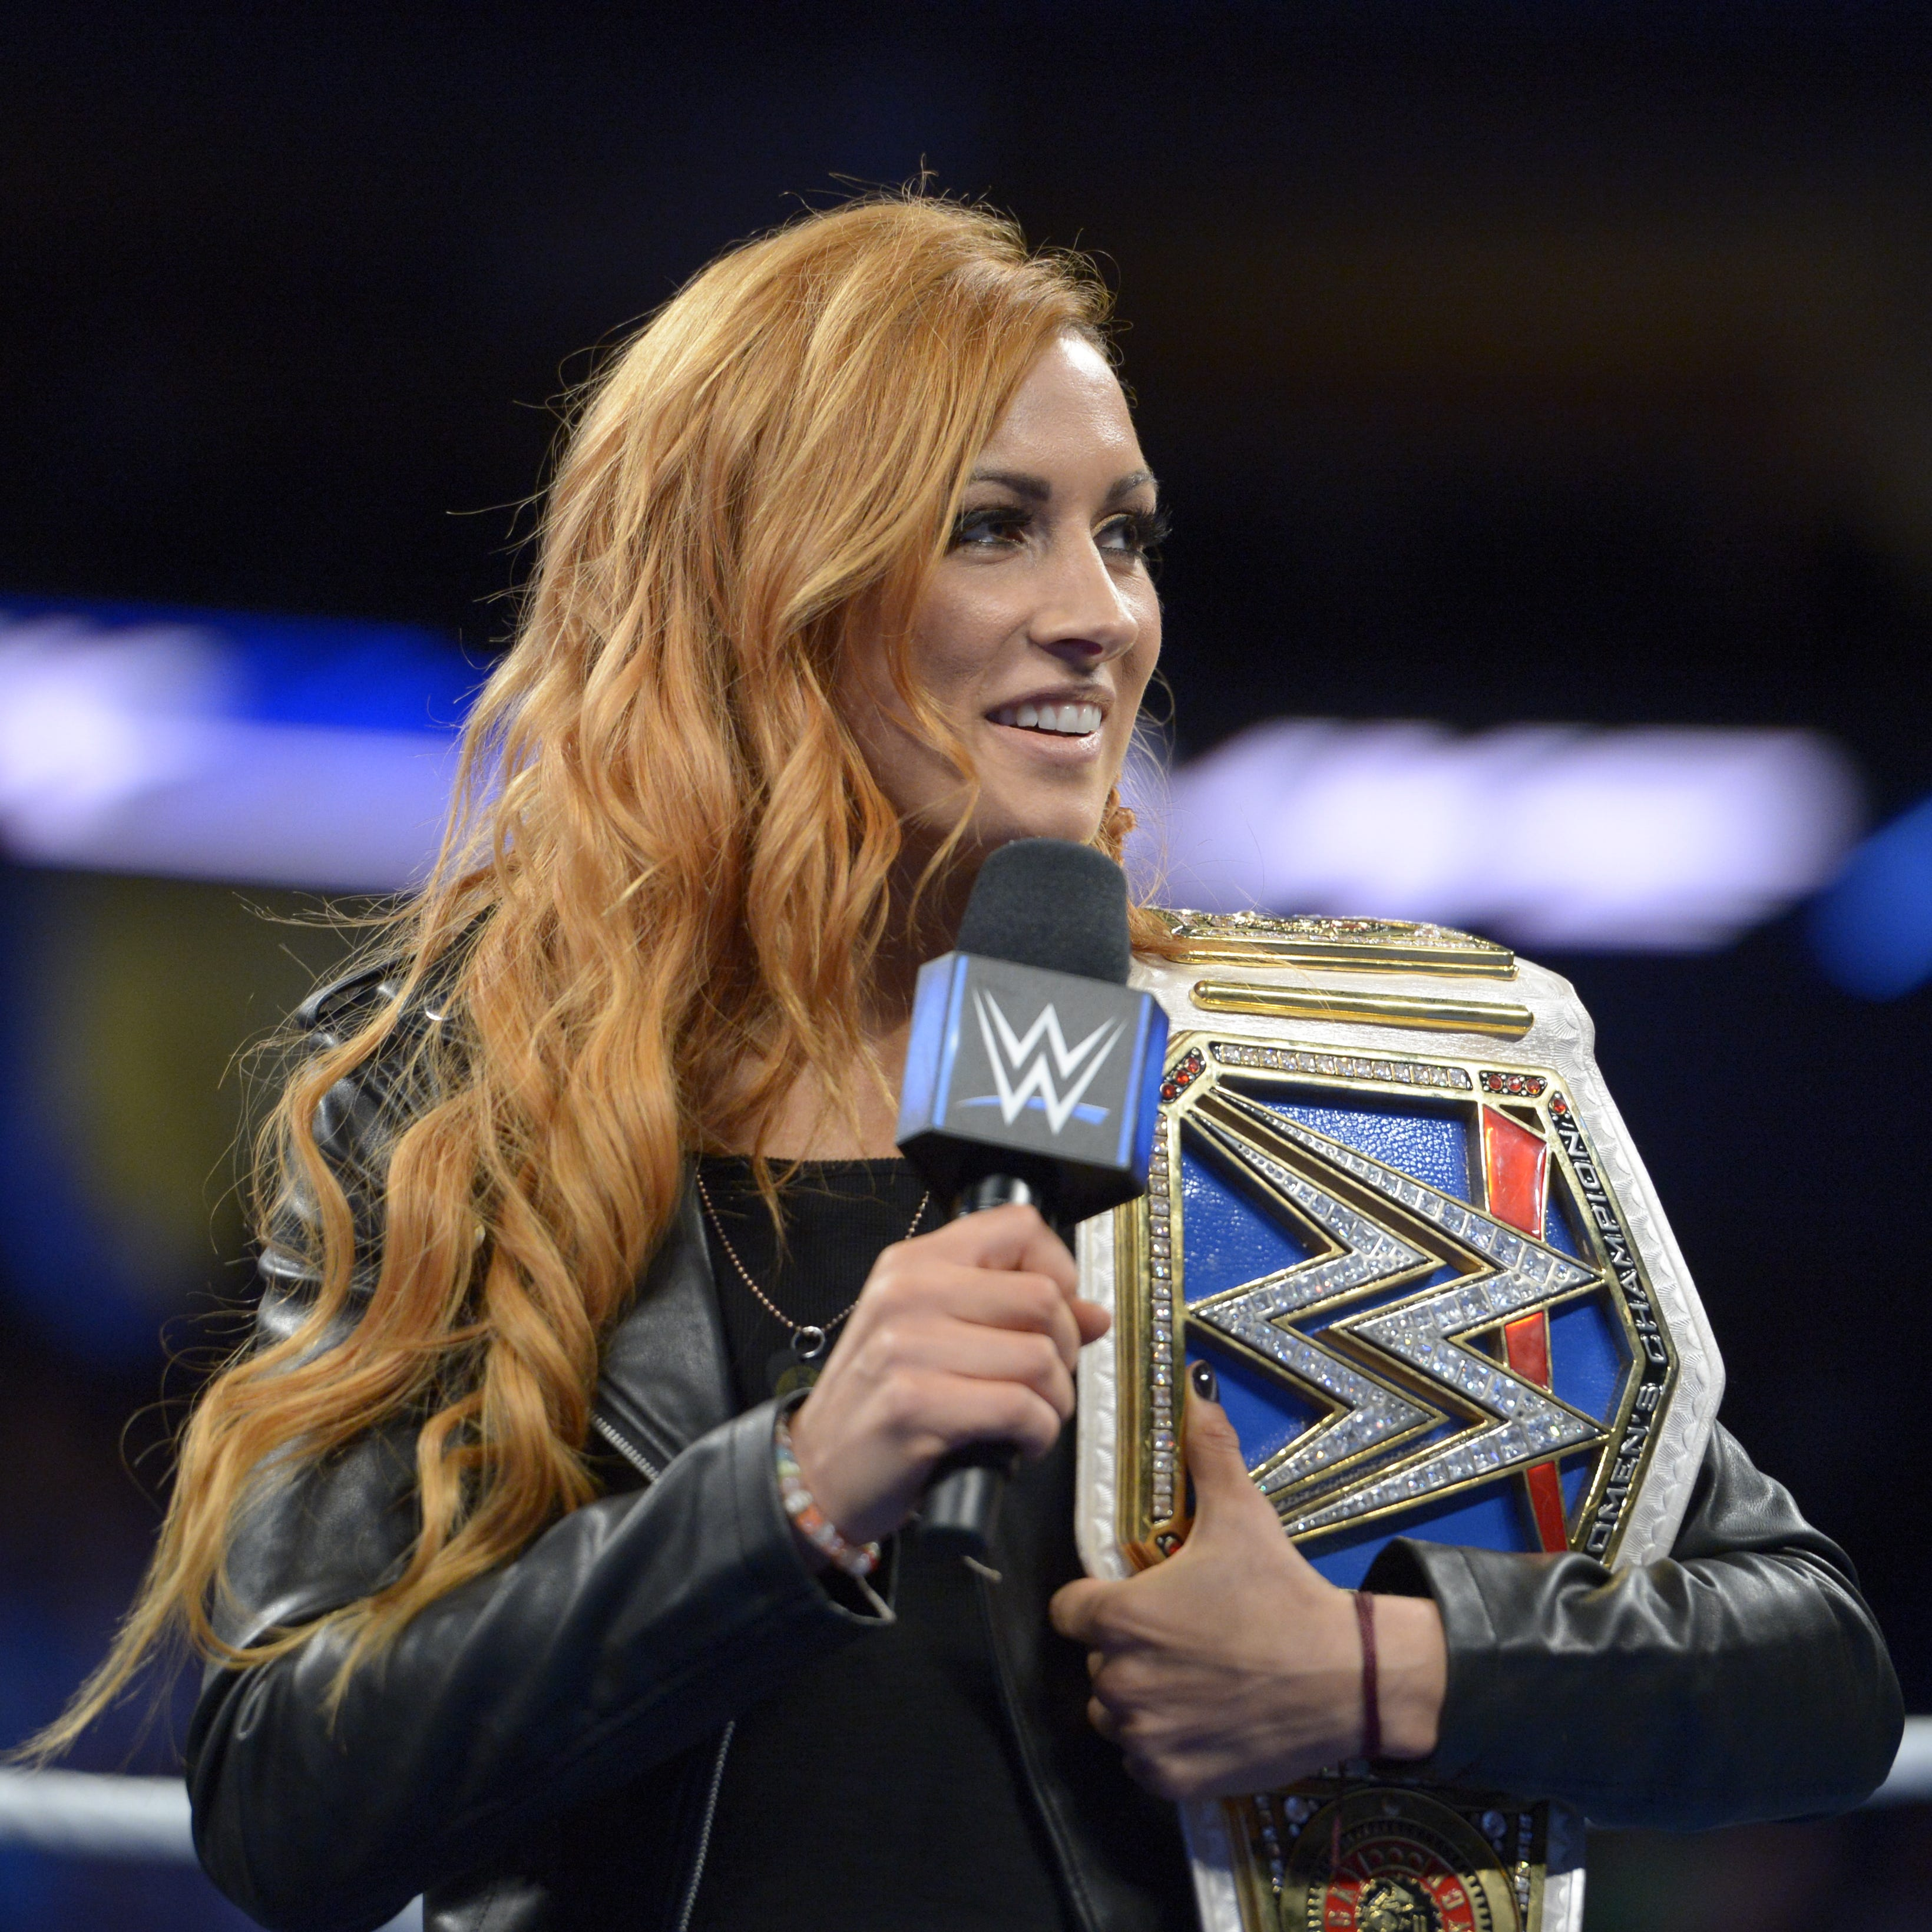 Becky Lynch back atop the SmackDown women's division as champion